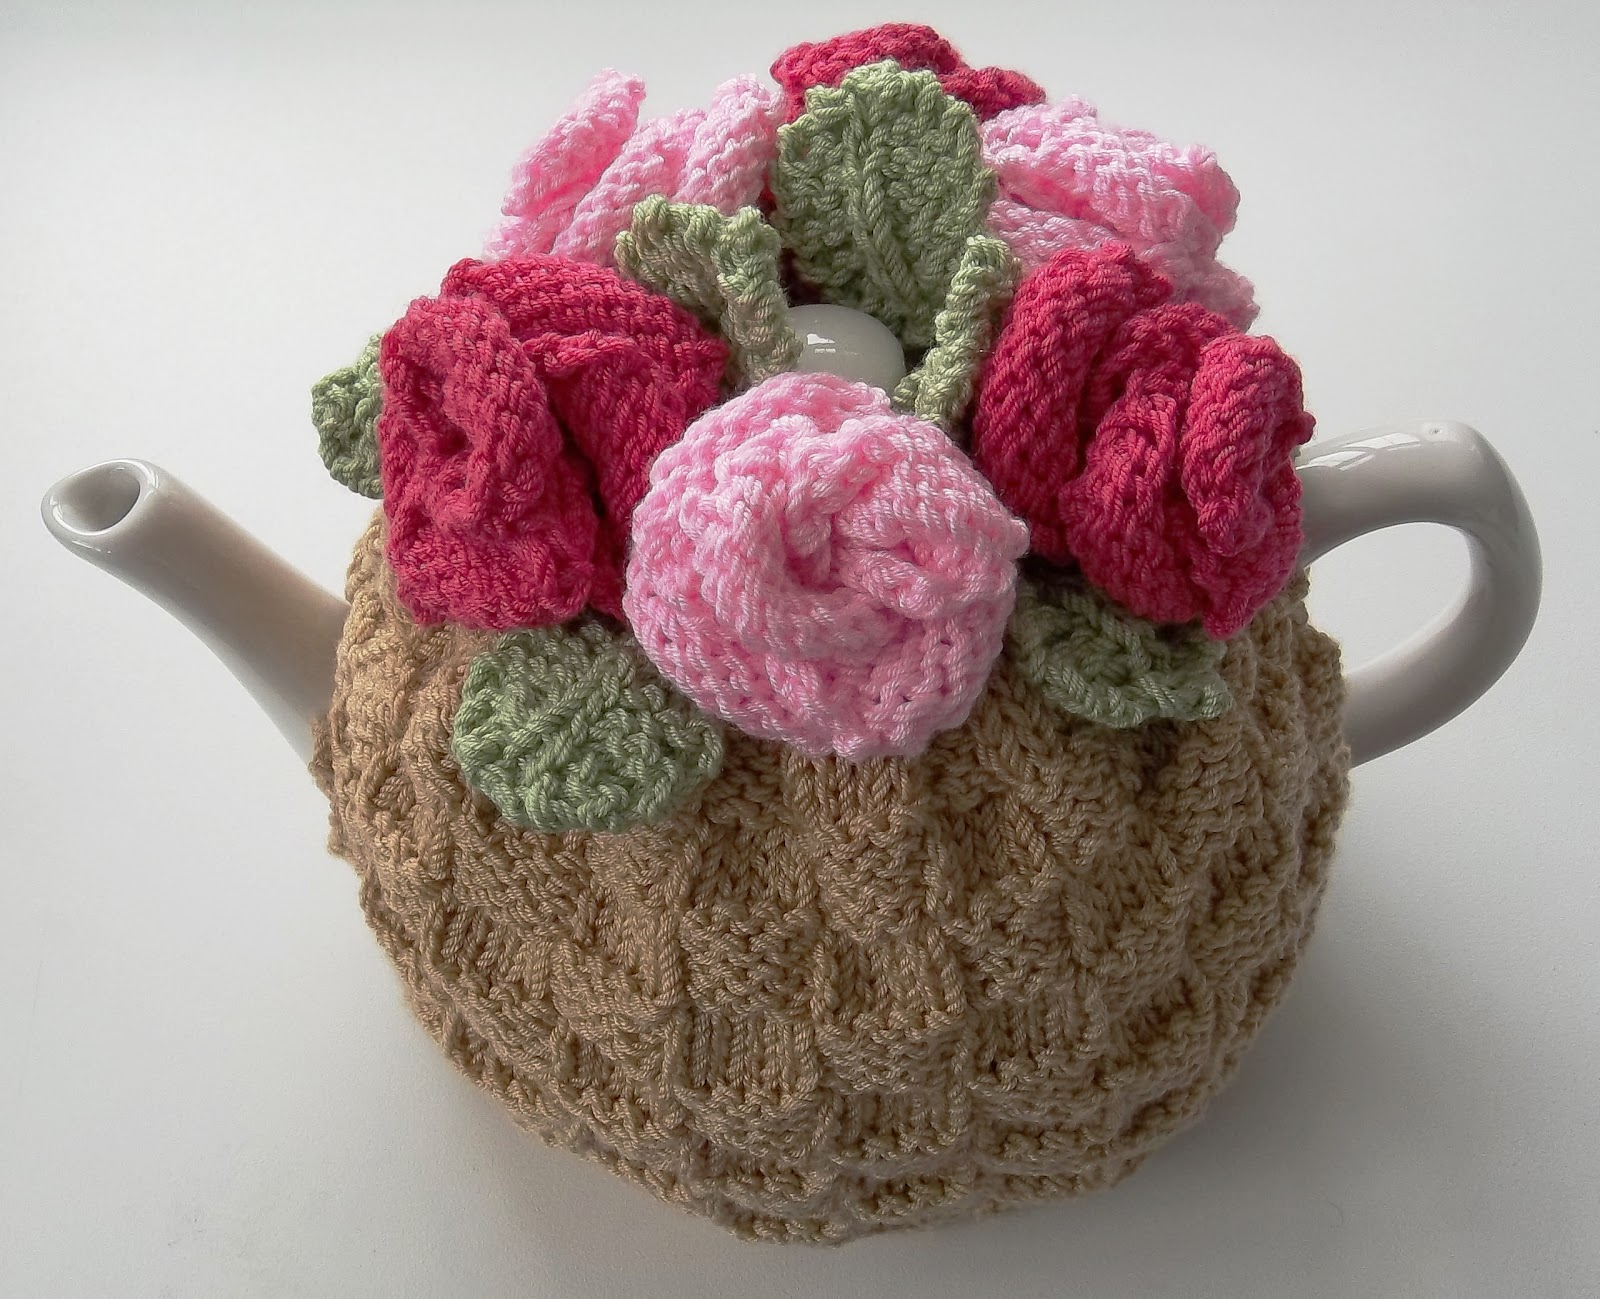 Tea Cosy Patterns To Knit The Tea Rose Tea Cosy Hand Knitting Pattern